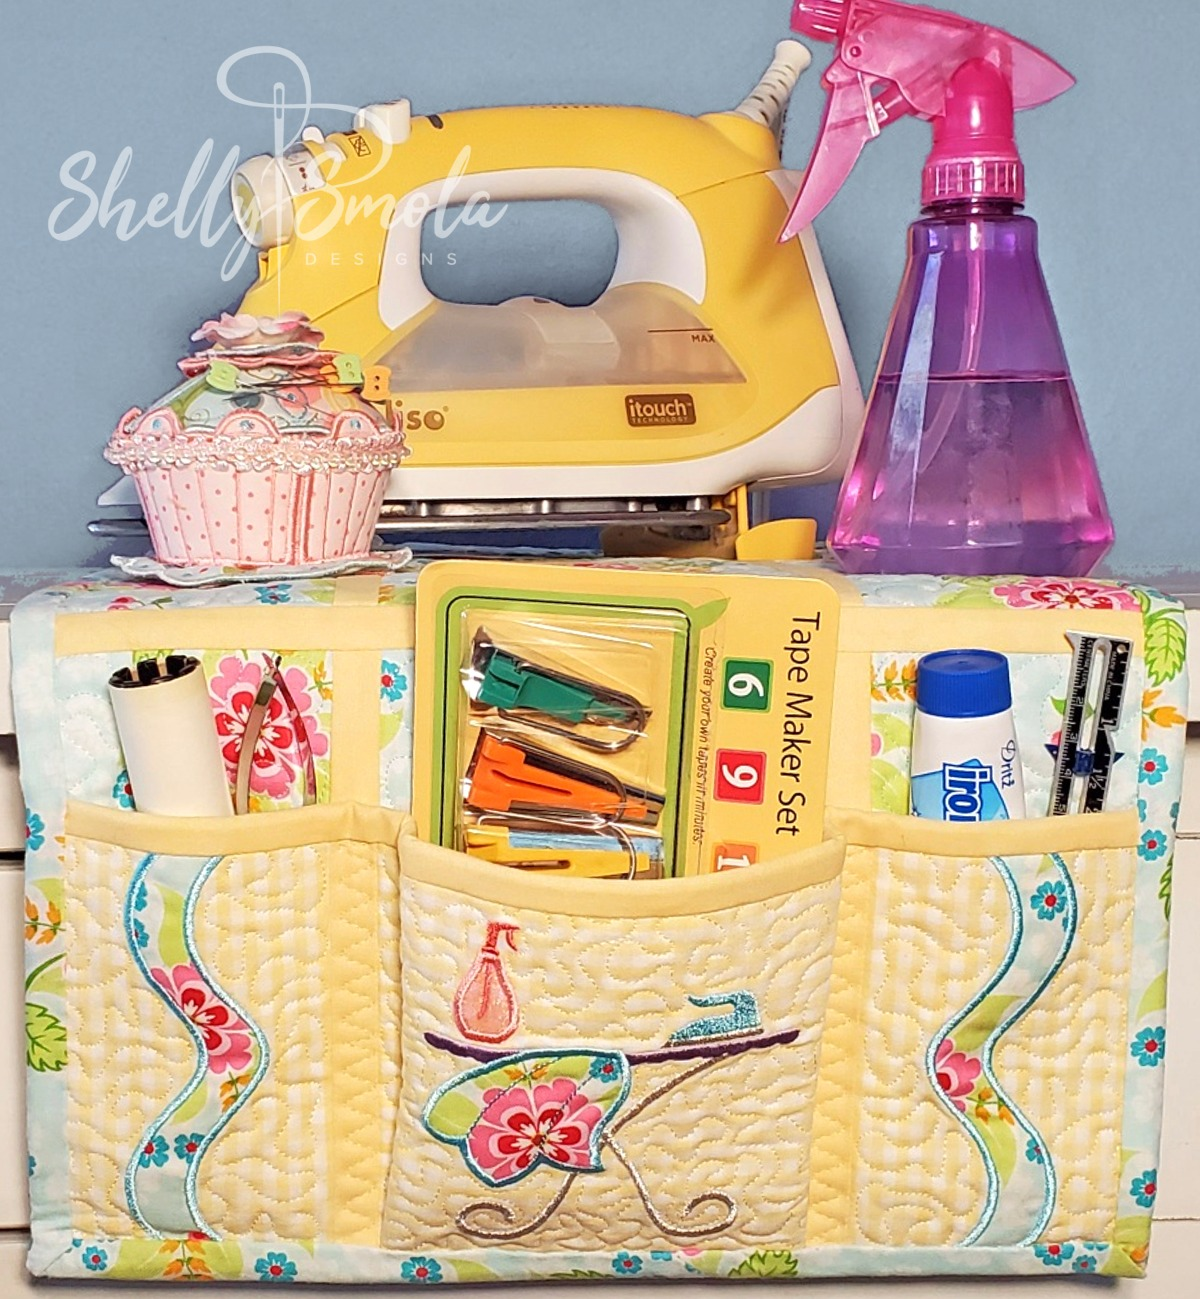 Sew Hot Ironing Board Caddy by Shelly Smola Designs